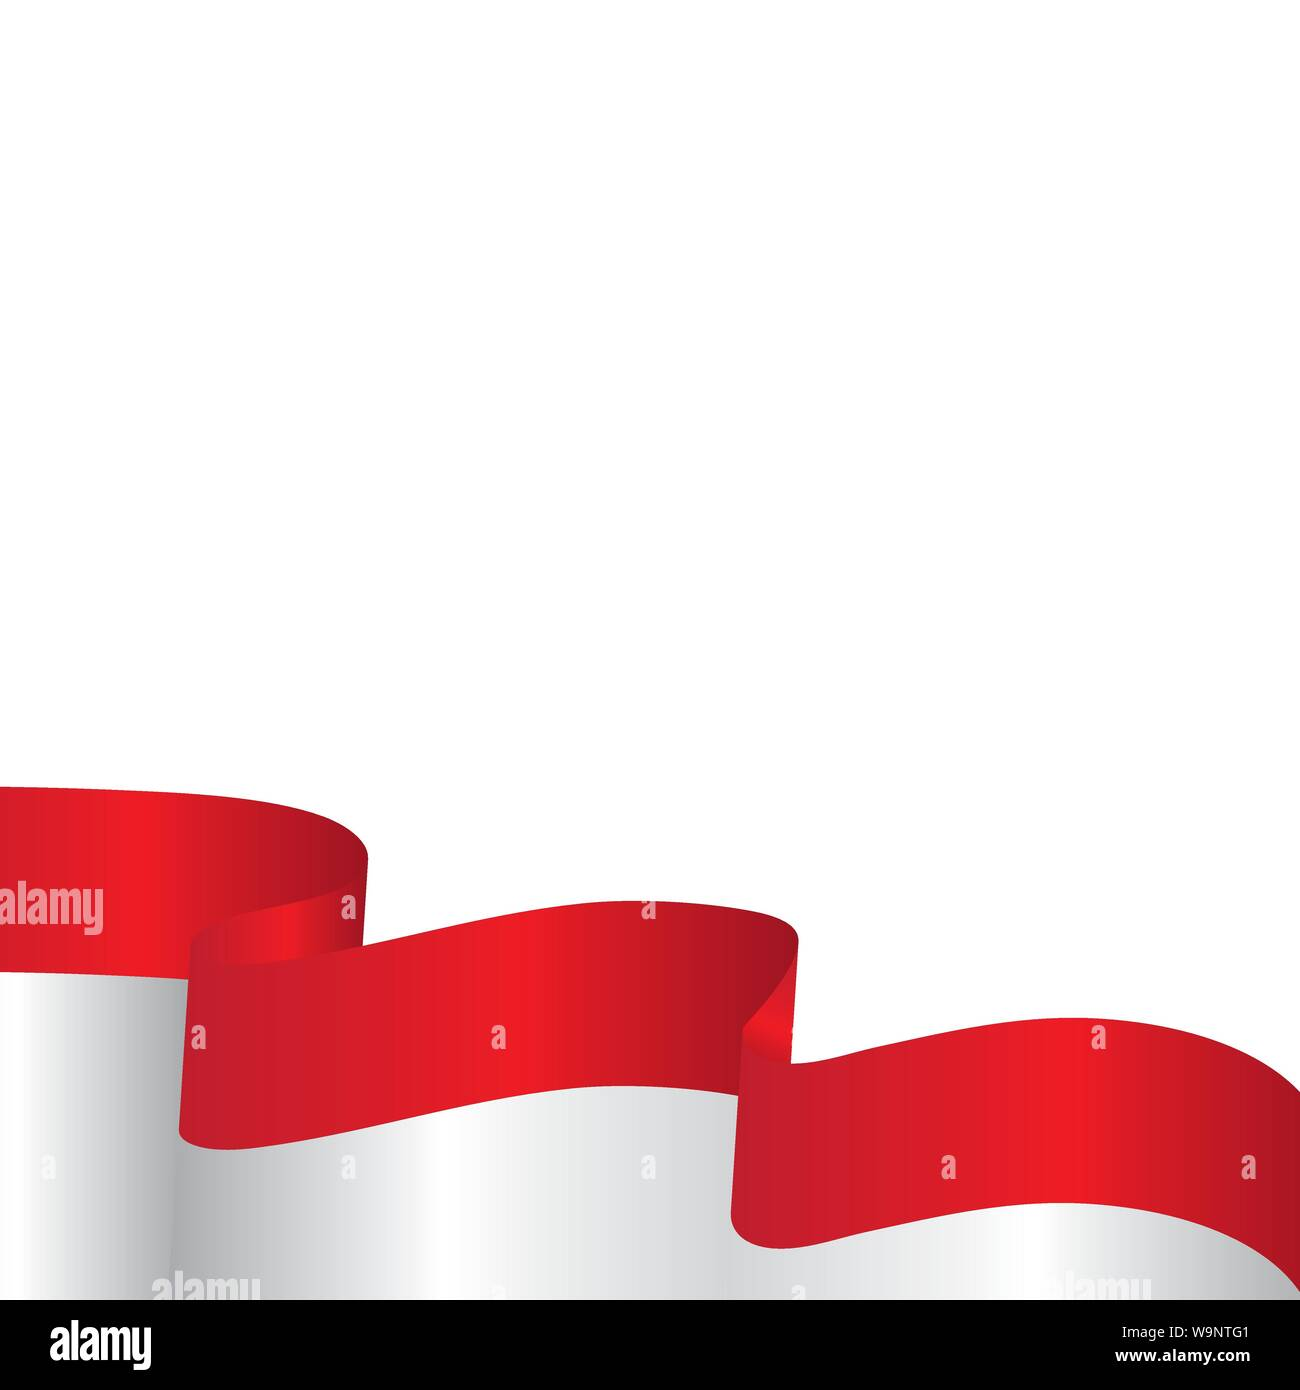 Indonesia Tourism Stock Vector Images Page 2 Alamy